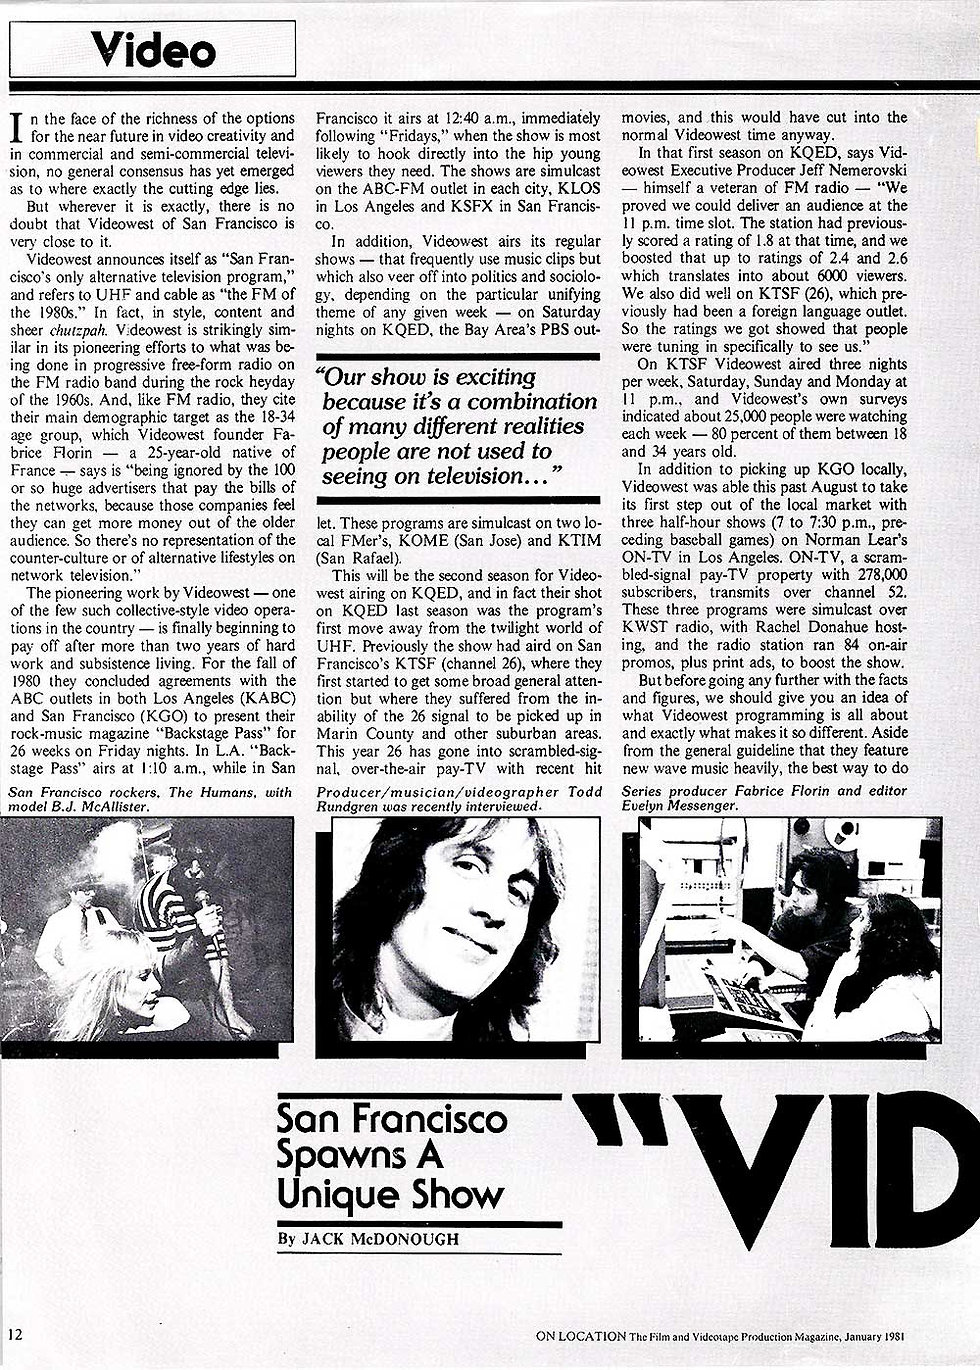 On-Location-Article-part-1.jpg